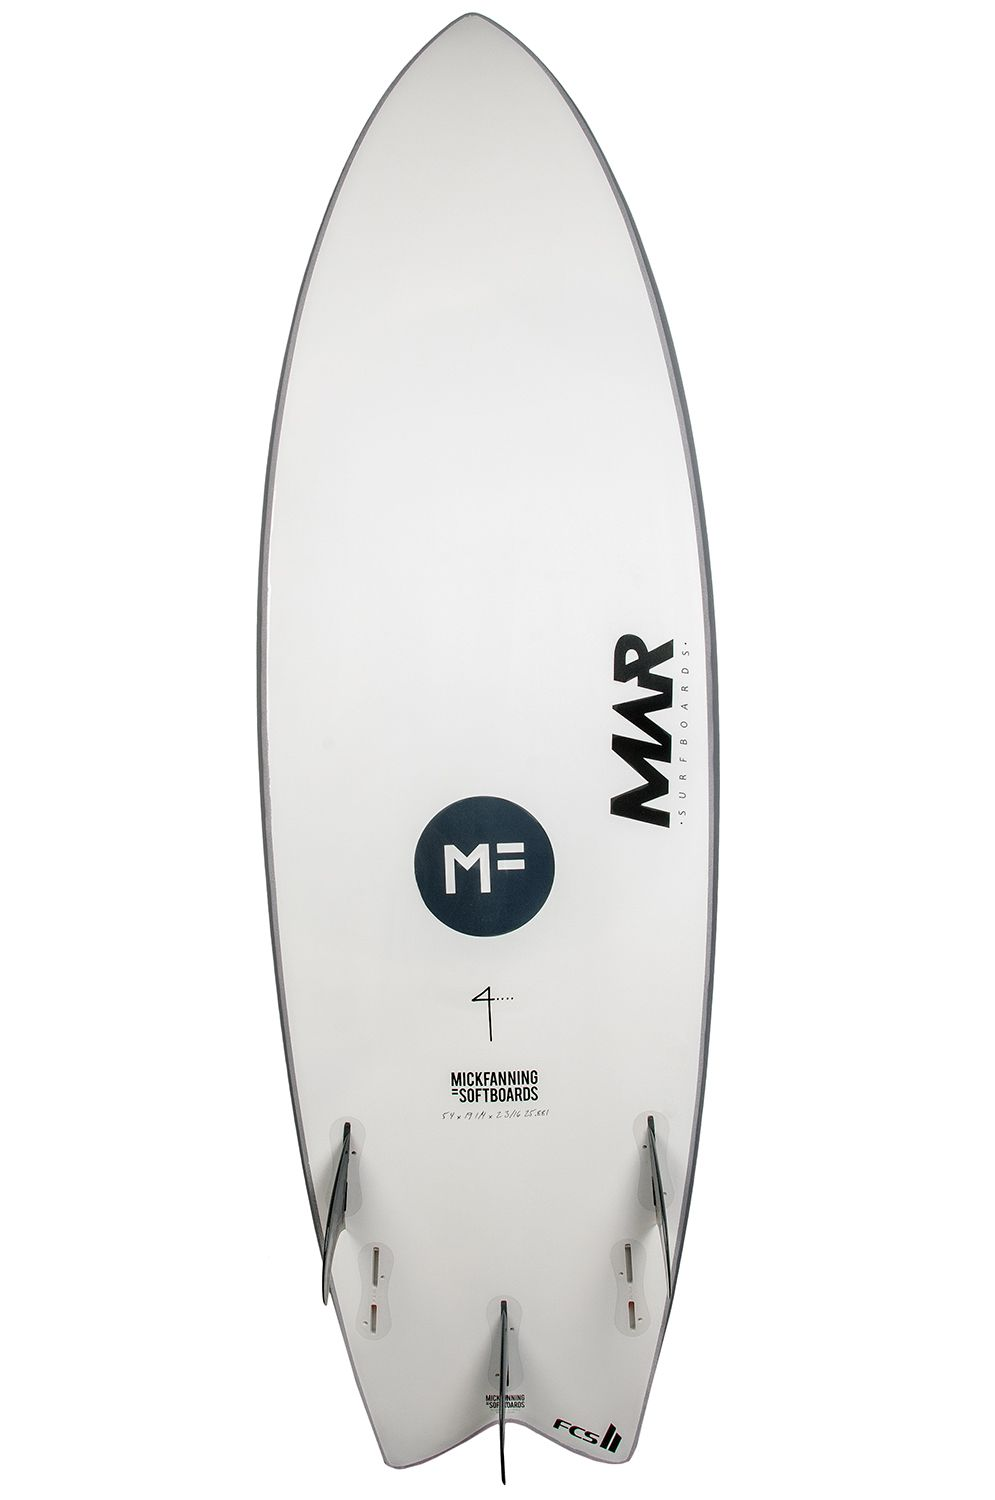 Prancha Surf Mar MICK FANNING THE 4 GREY 5'10 Fish Tail - Color FCS II Multisystem 5ft10